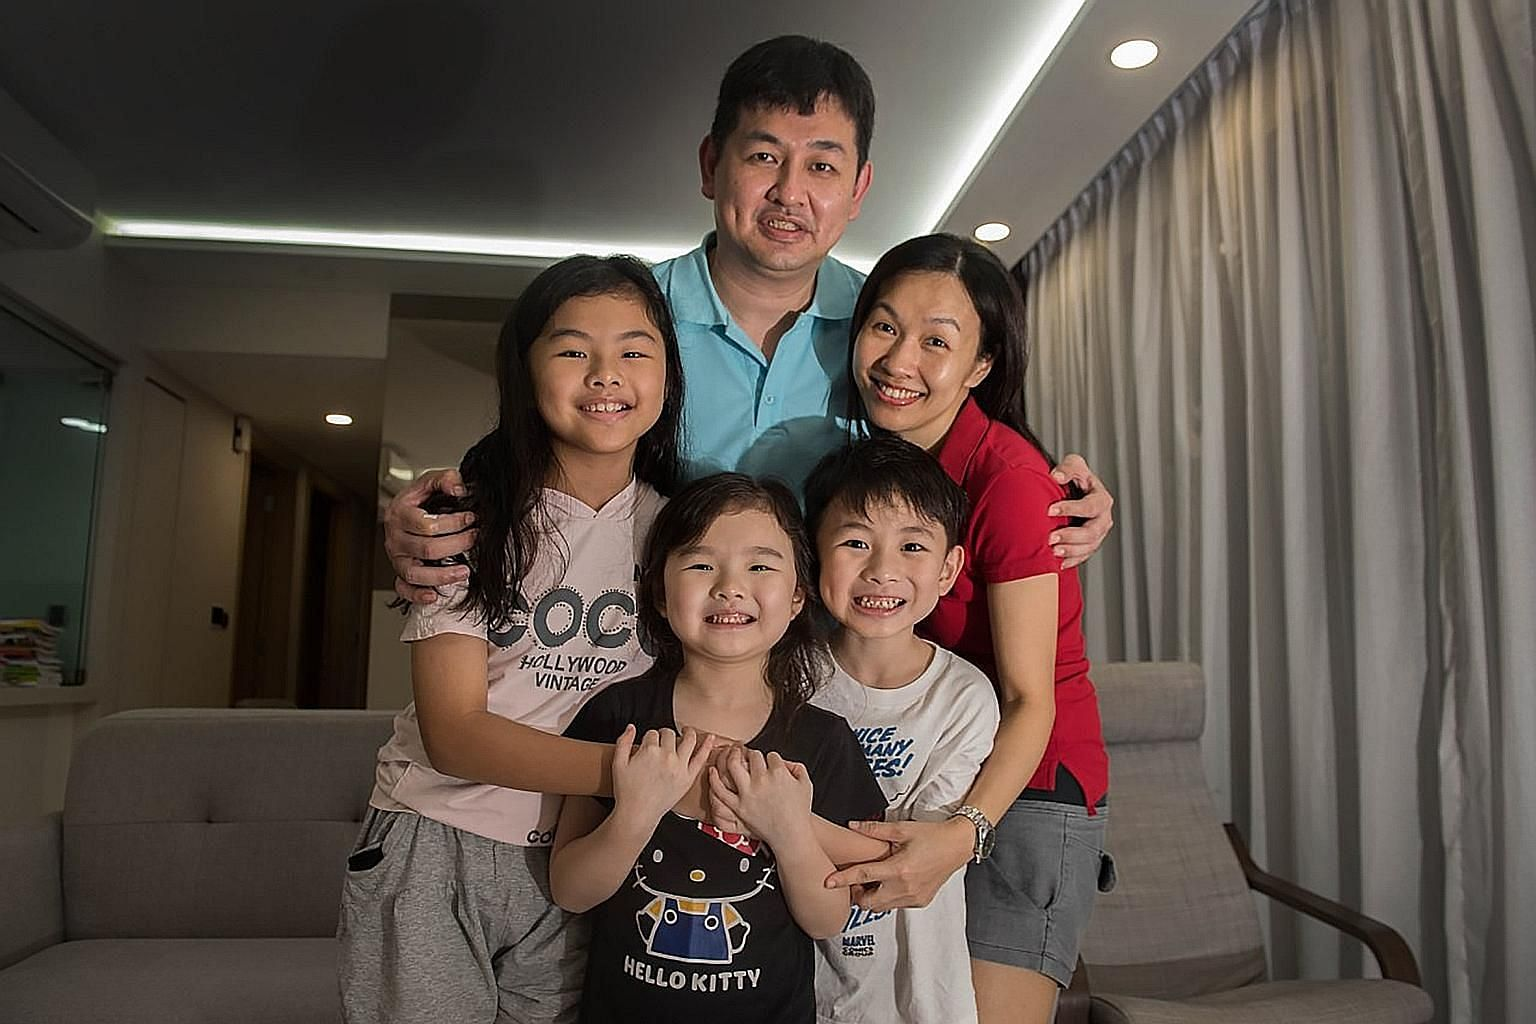 Mr Bryan Lee Ooi Chiang and his wife Lee Ah Nee with their children (from left) Cherise, Celeste and Kayson. Six-year-old Celeste will be joining her older siblings in Chong Fu Primary School in Yishun next year. Mrs Lee says she hopes this will mean